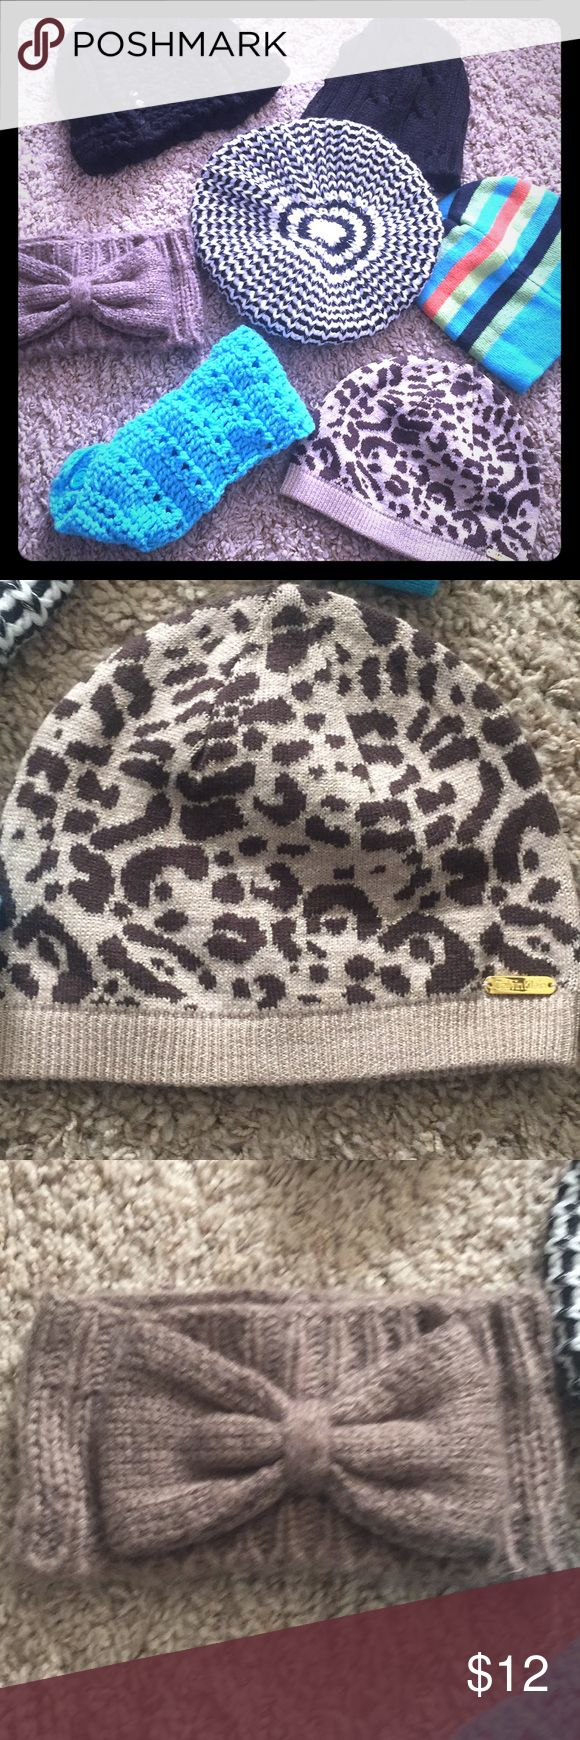 Bundle of beanies and headbands 2 black beanies, a slouch black and cream beanie with mettalic strands, clavin klein leapard print beanie, turquoise multicolor beanie and two wool head bands. Excellent condition and open to offers❄️ Accessories